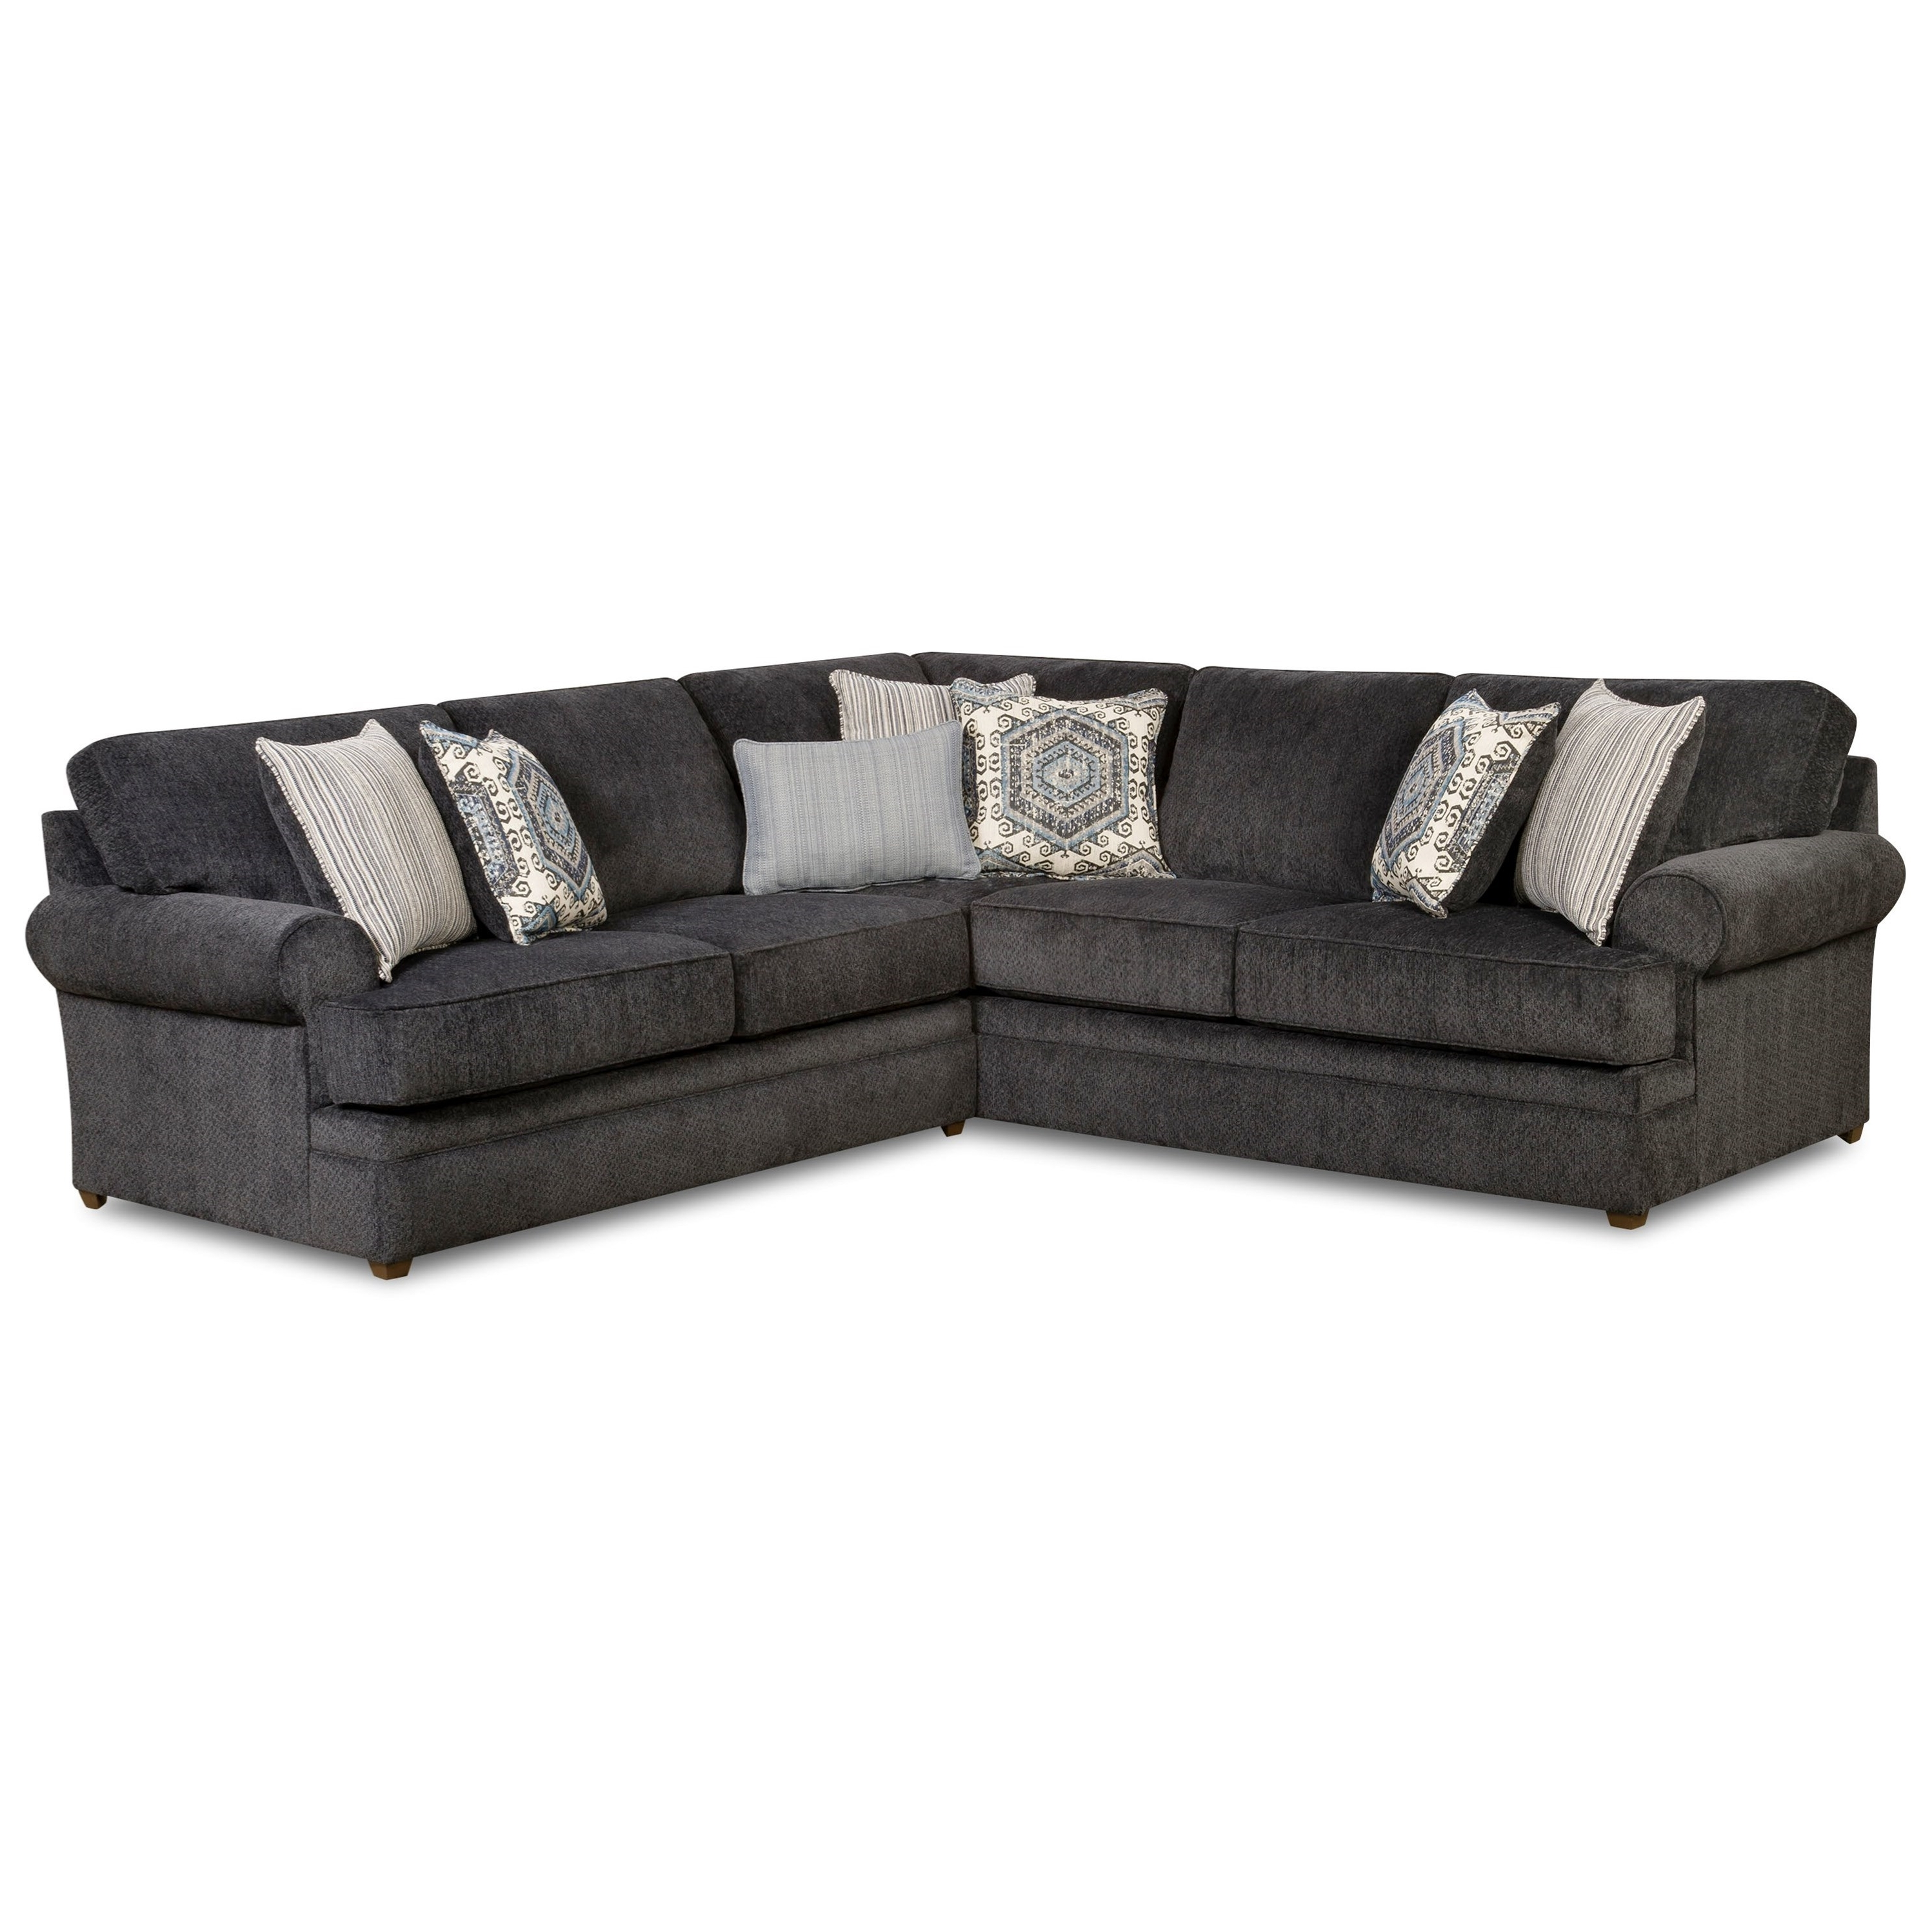 Simmons Upholstery 8530 Br Transitional Sectional Sofa With Rolled With Regard To Widely Used Sectional Sofas At Birmingham Al (View 19 of 20)